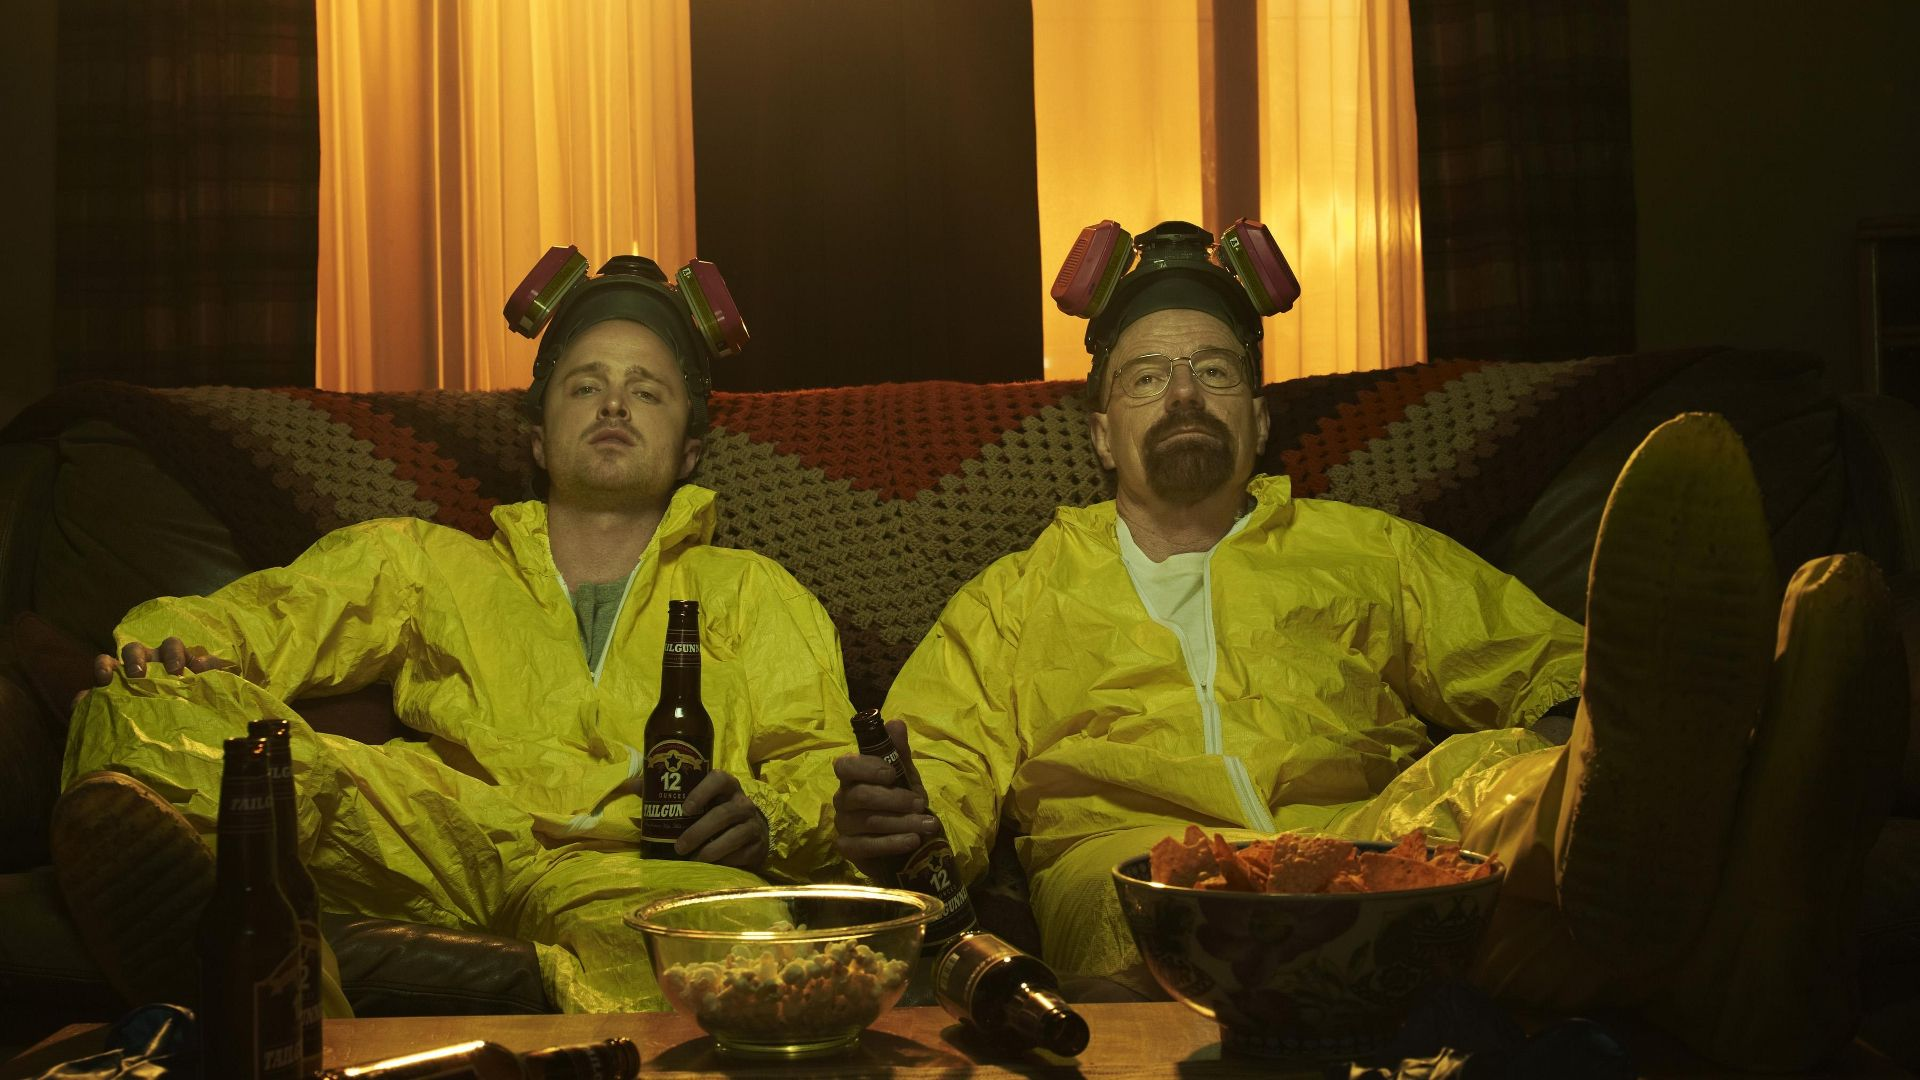 Jesses and Walt on the couch. Breaking Bad | Breaking bad seasons ...